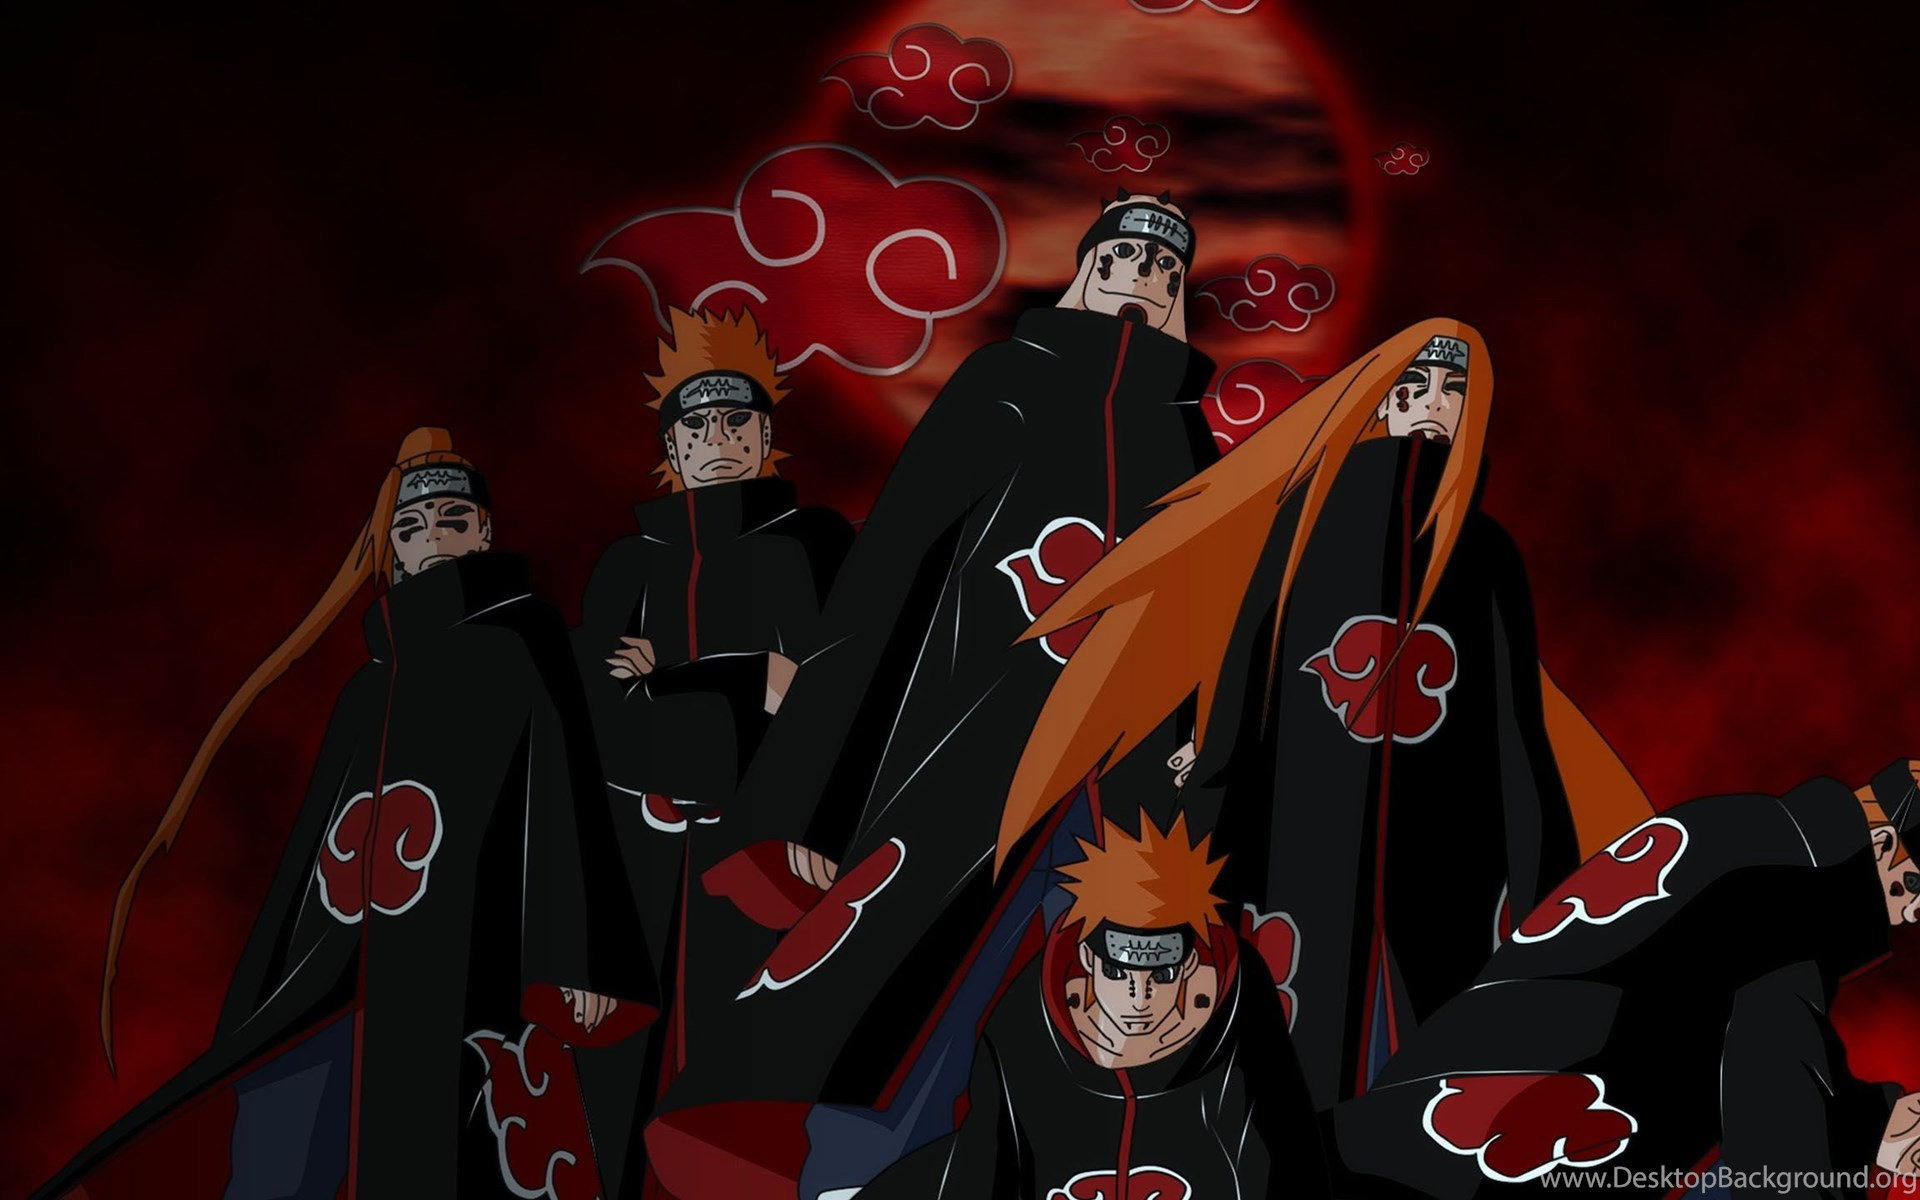 Hd Naruto Iphone Wallpapers Six Pain 1080 Hd Wallpapers Desktop Background